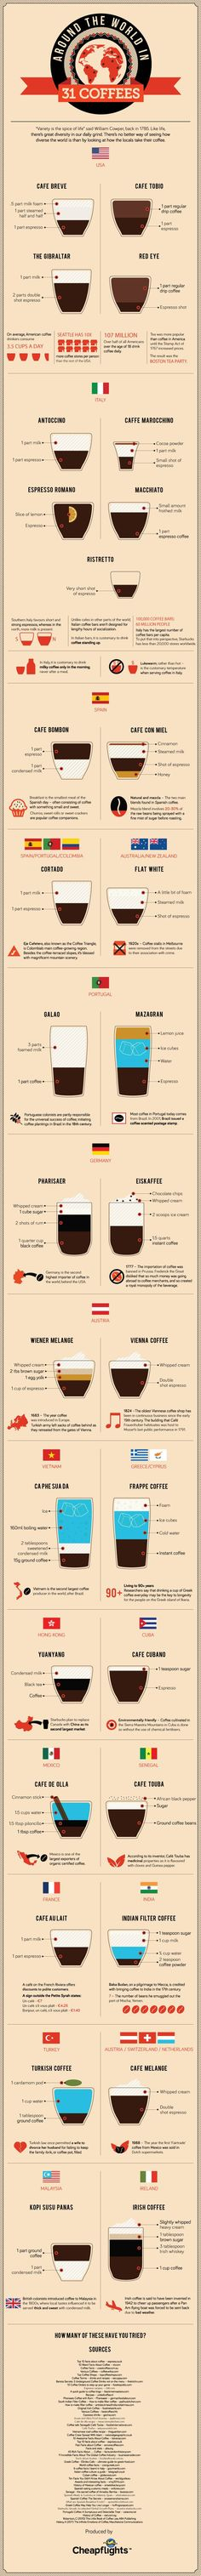 26 Ways To Order Coffee In Other Countries Without Looking Like An Amateur - Omgfacts - The World's #1 Fact Source